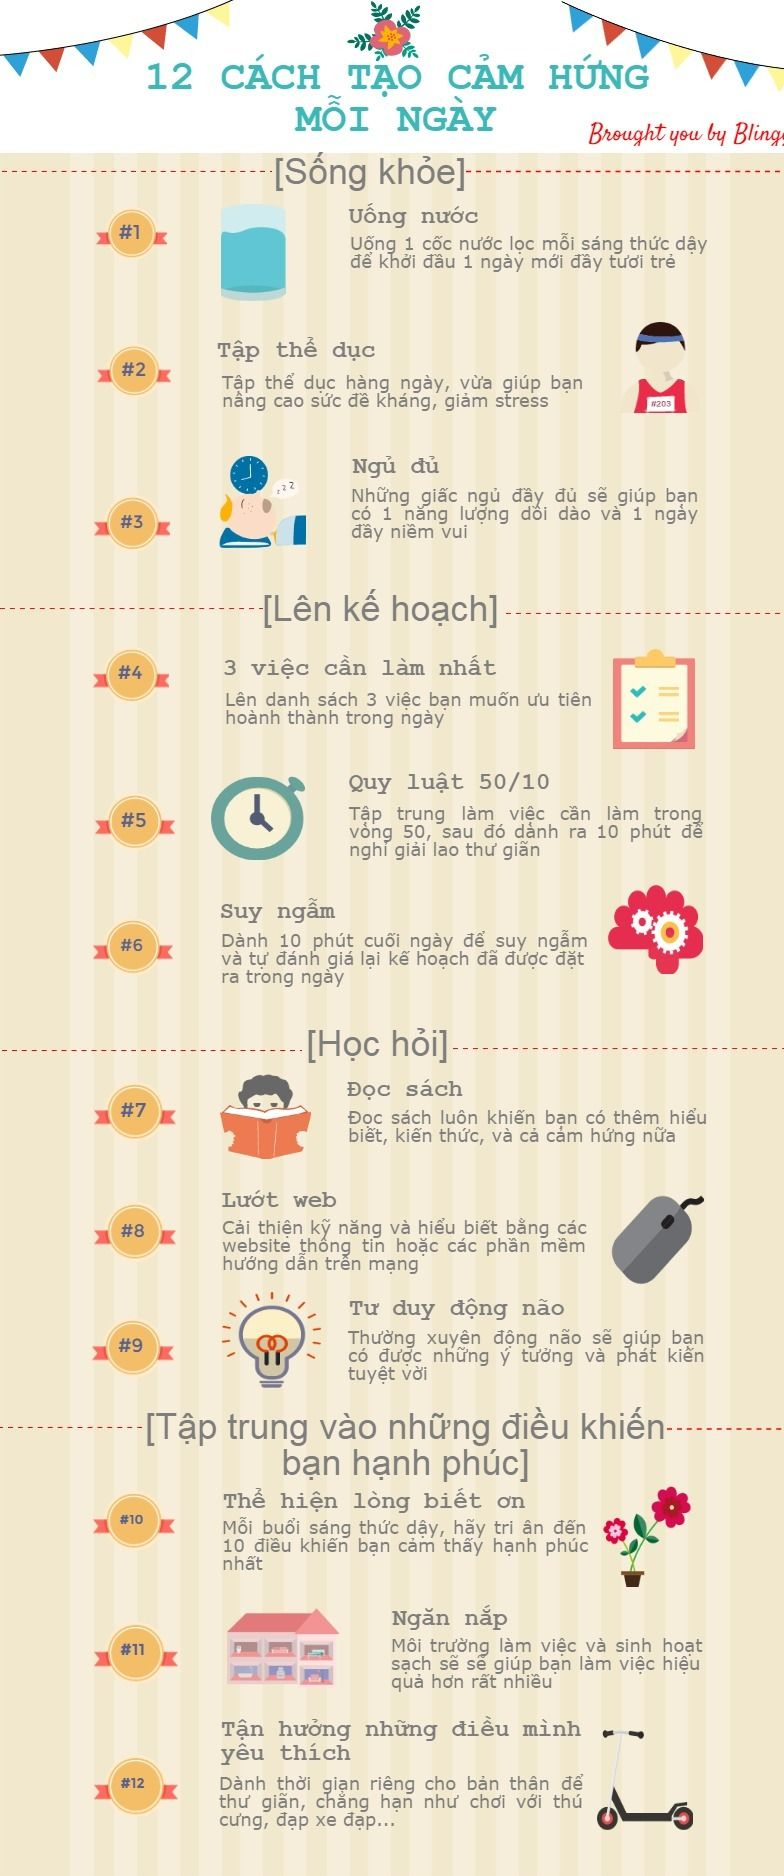 My very first Infographic, about inspiration things in life, made in Vietnamese for my friends. Will try to keep it up :D